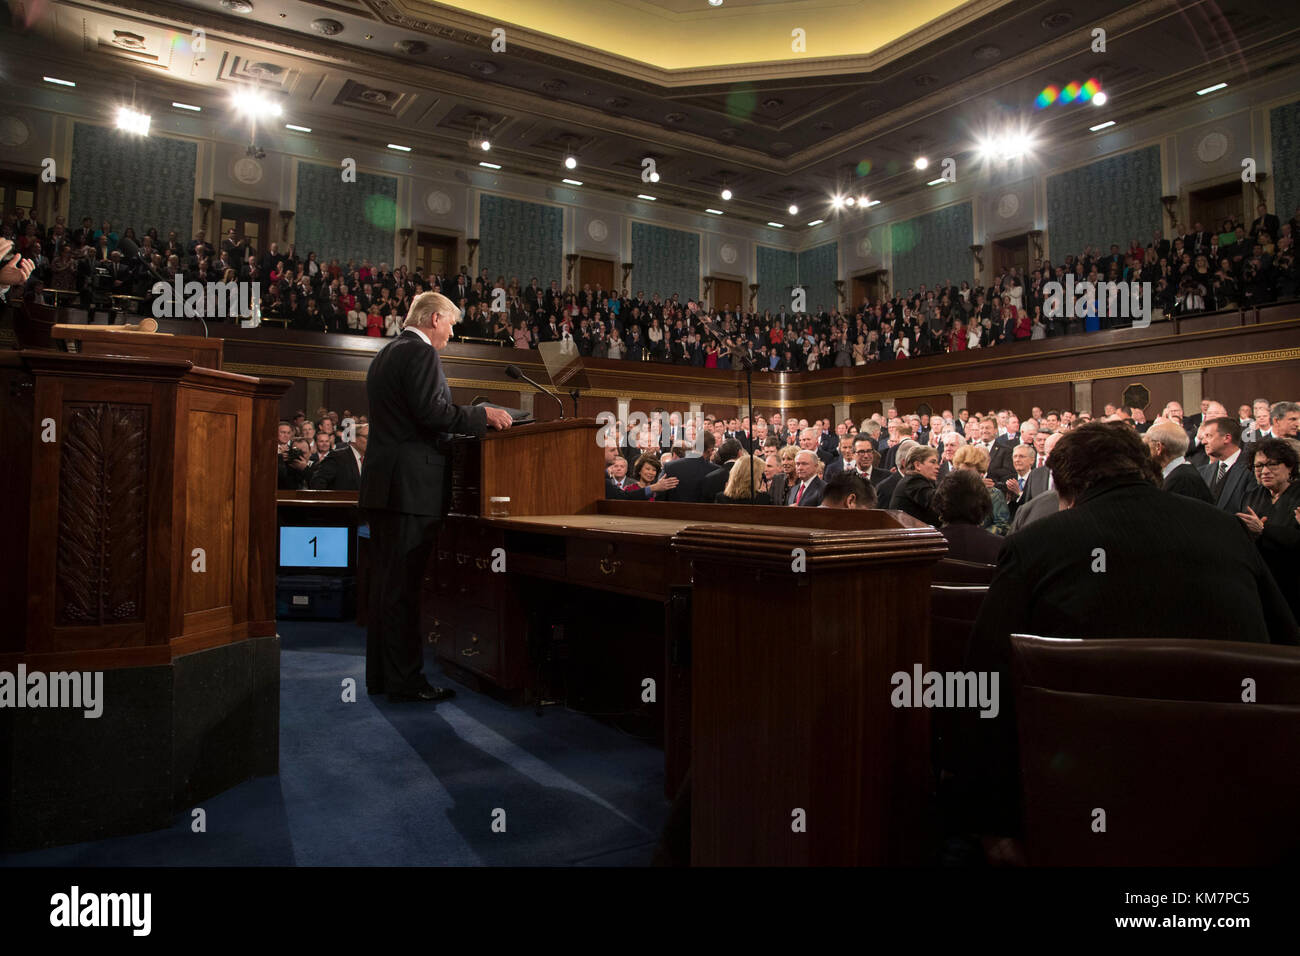 President Donald Trump delivers the Address to Congress on Tuesday, February 28, 2017, at the U.S. Capitol.  This - Stock Image